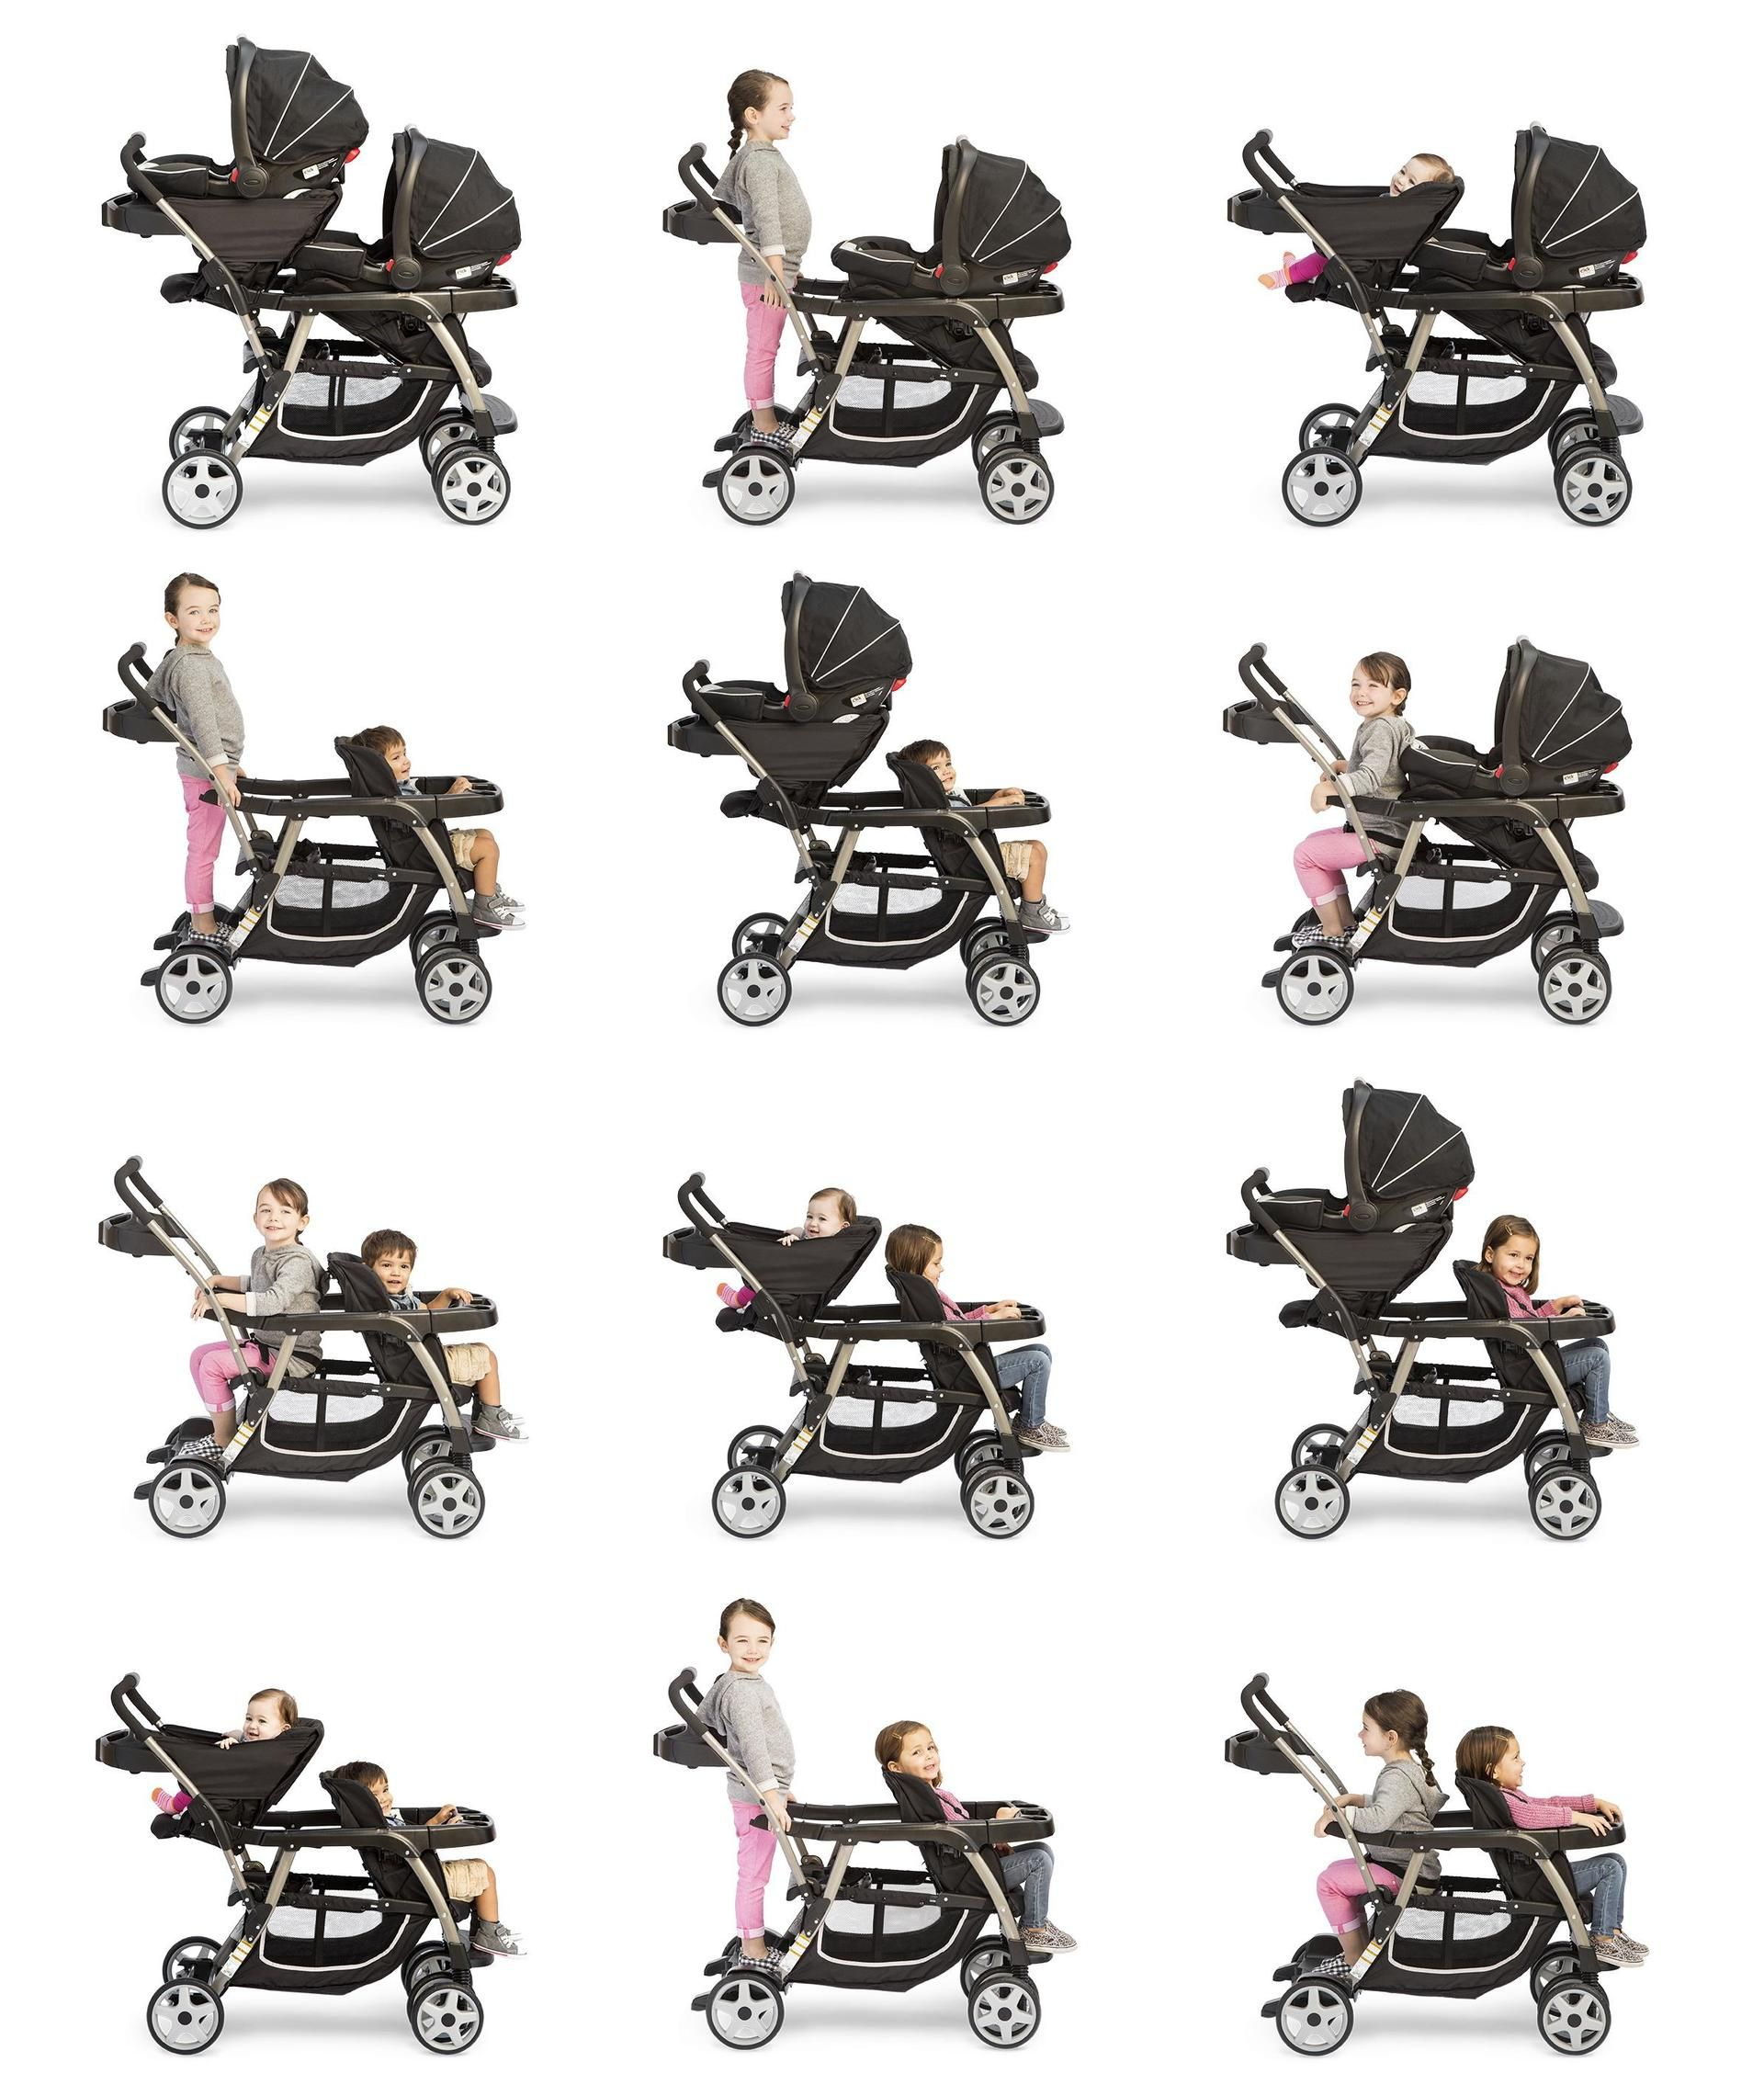 Graco Ready2Grow Double Stroller Walmart Canada in 2020